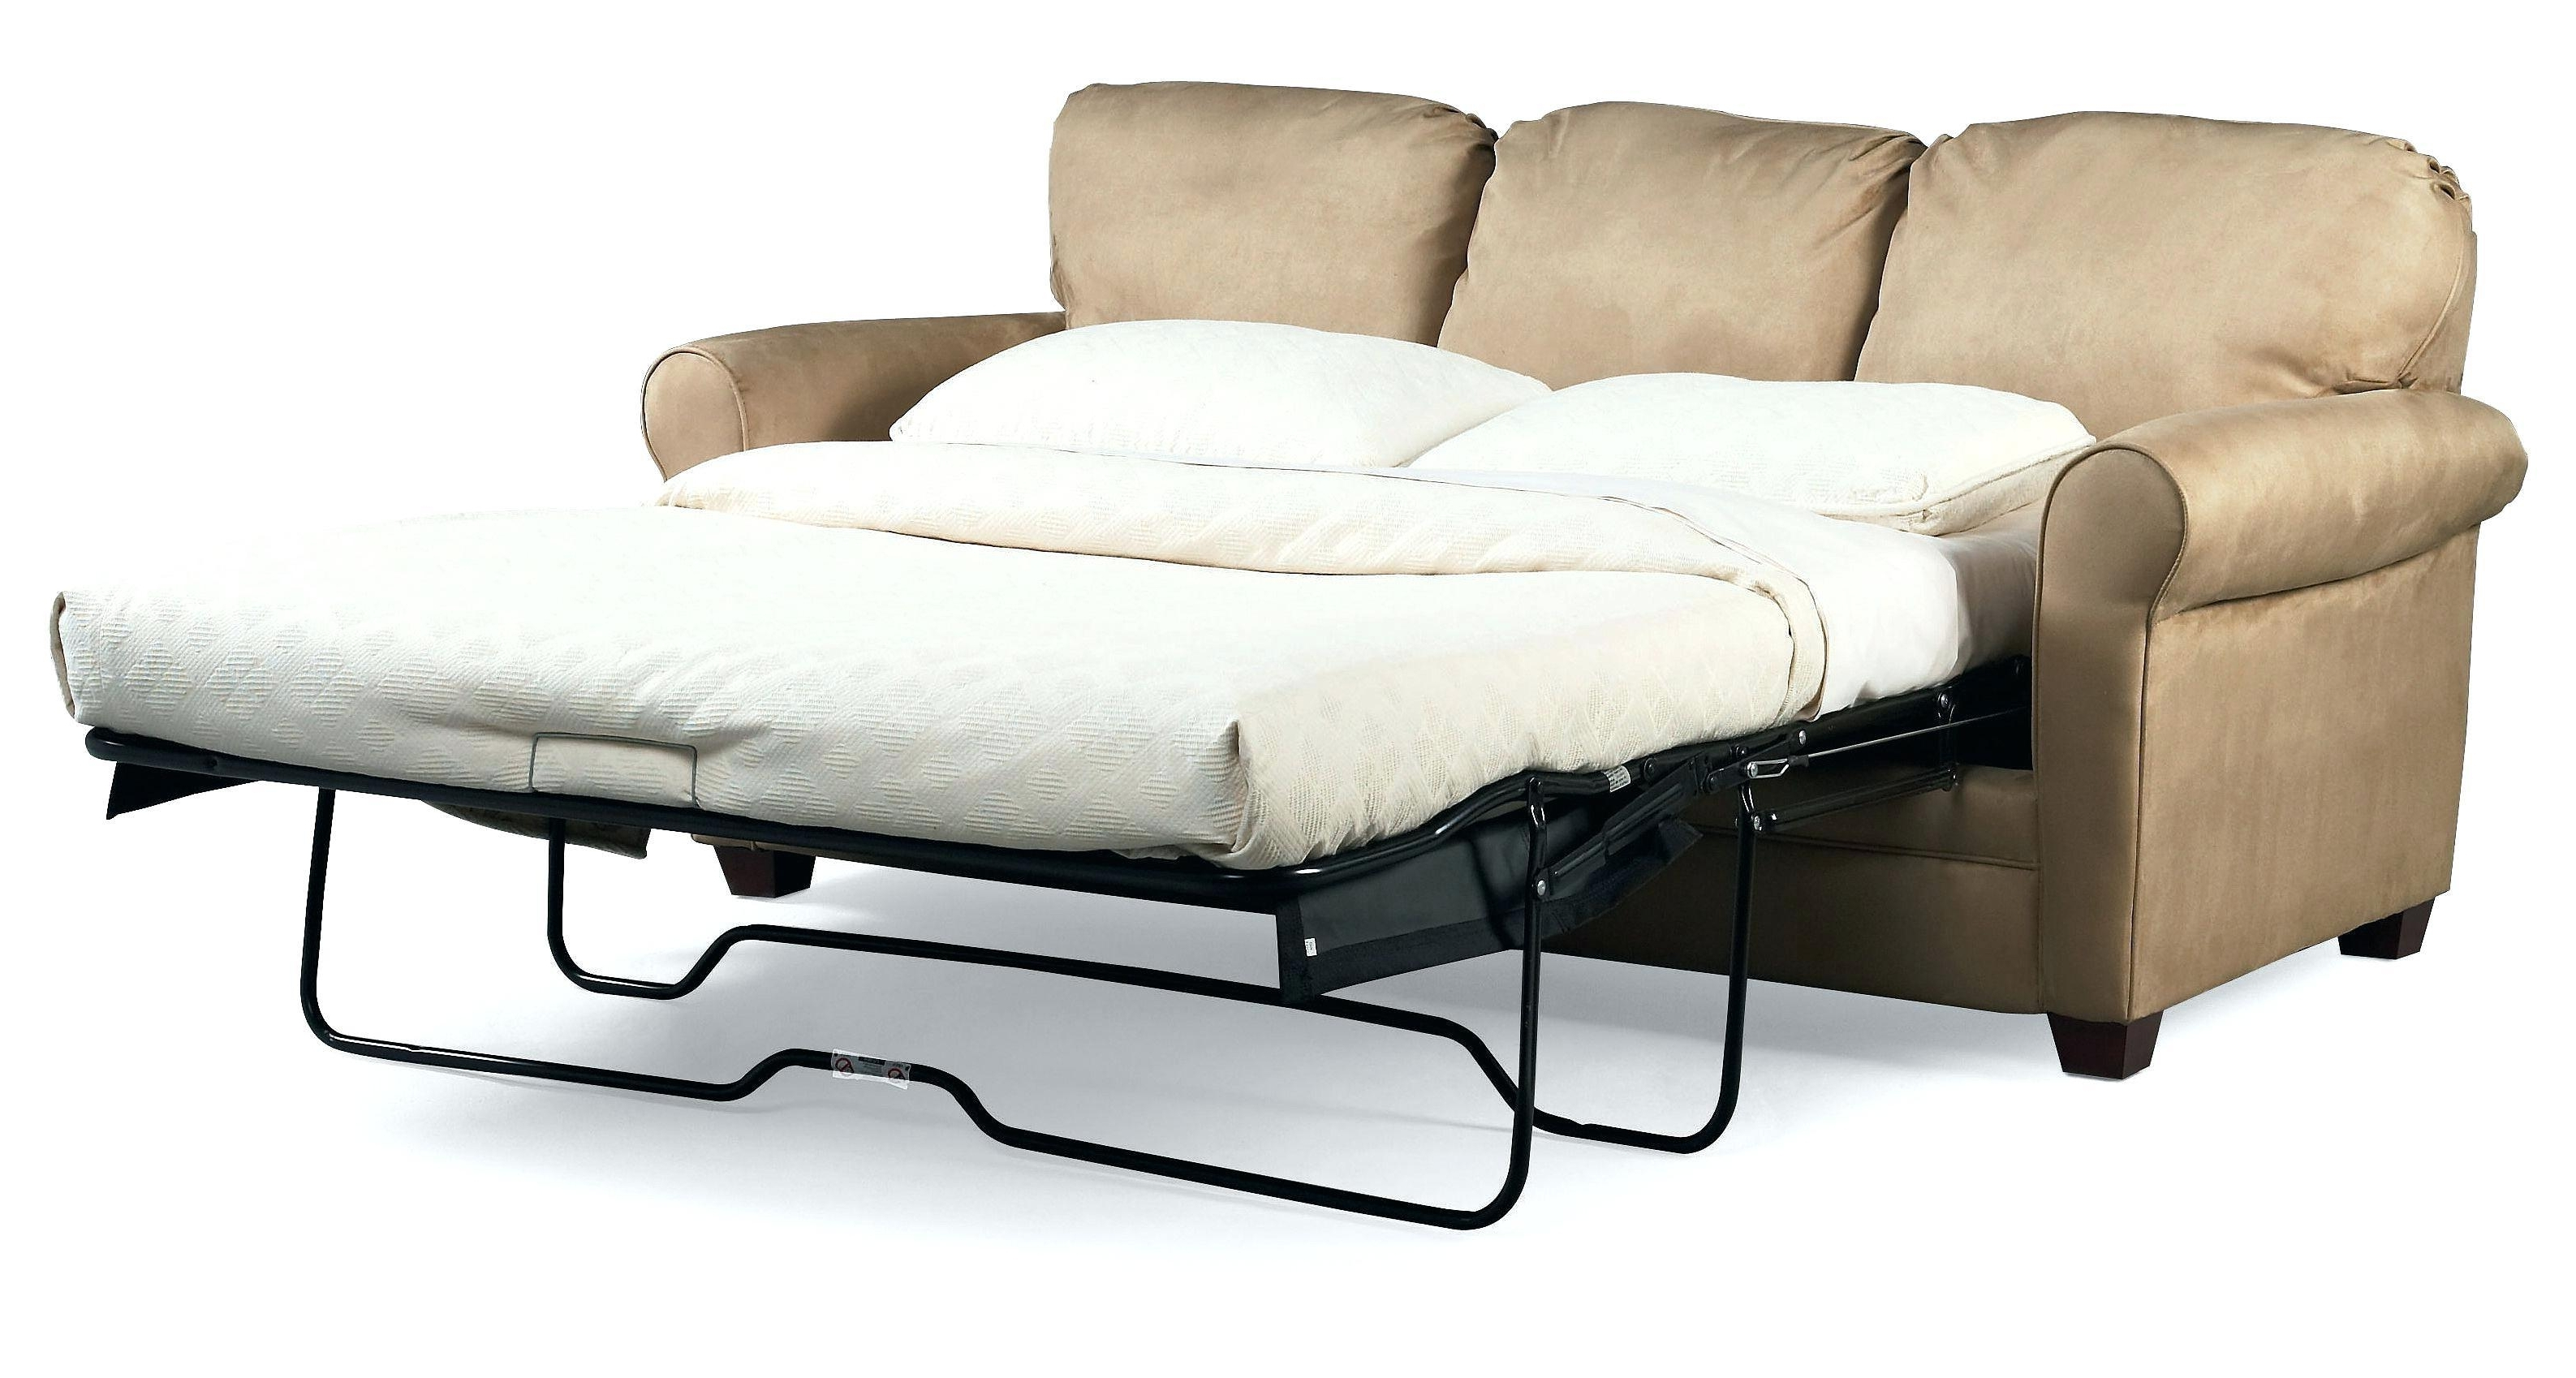 Newest Queen Size Sofas In Awesome Queen Size Sleeper Sofa Sa With Memory Foam Mattress Provo (View 7 of 15)